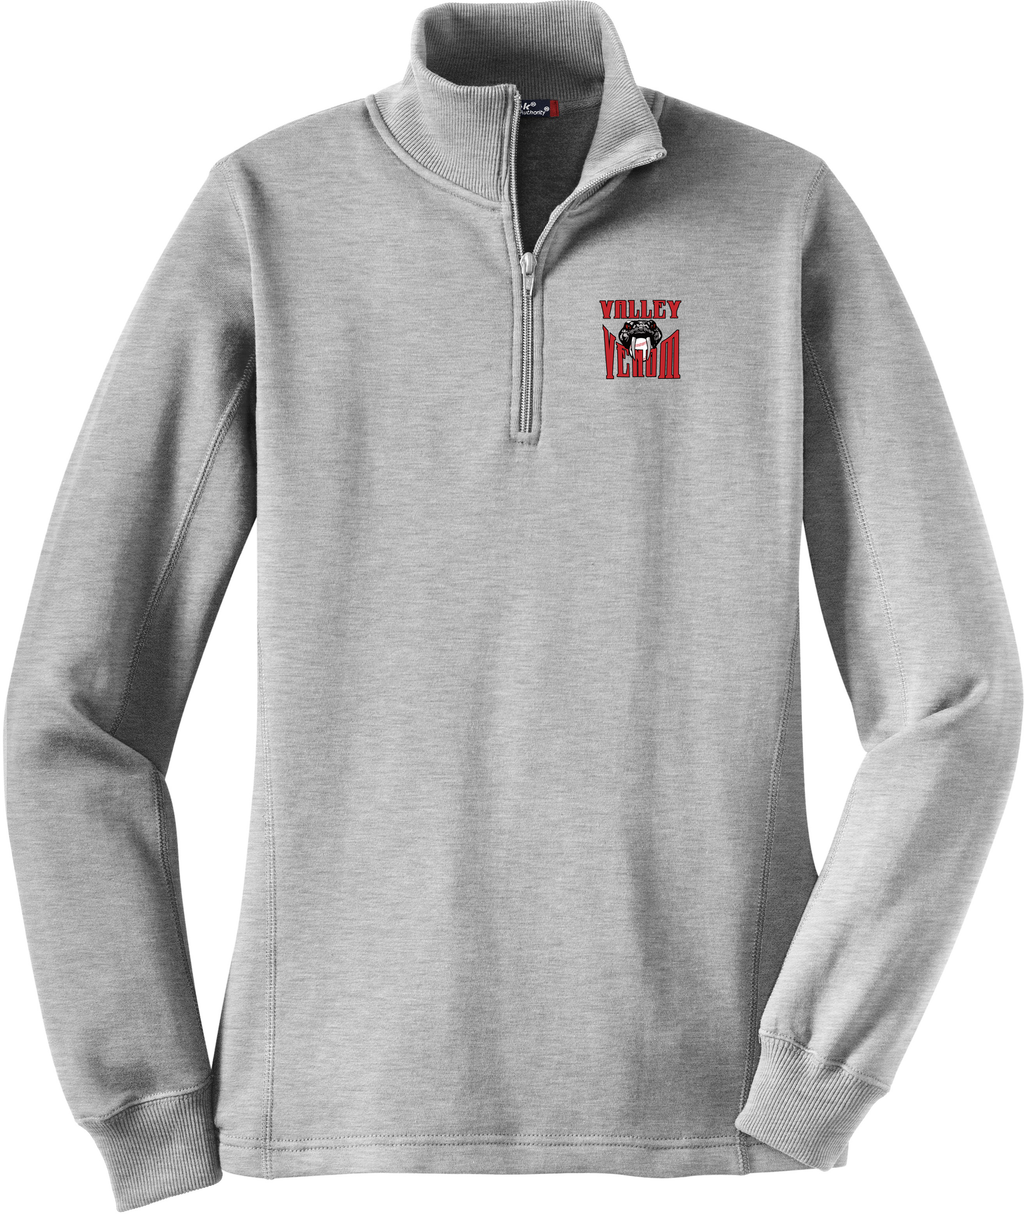 Valley Venom Baseball Women's 1/4 Zip Fleece